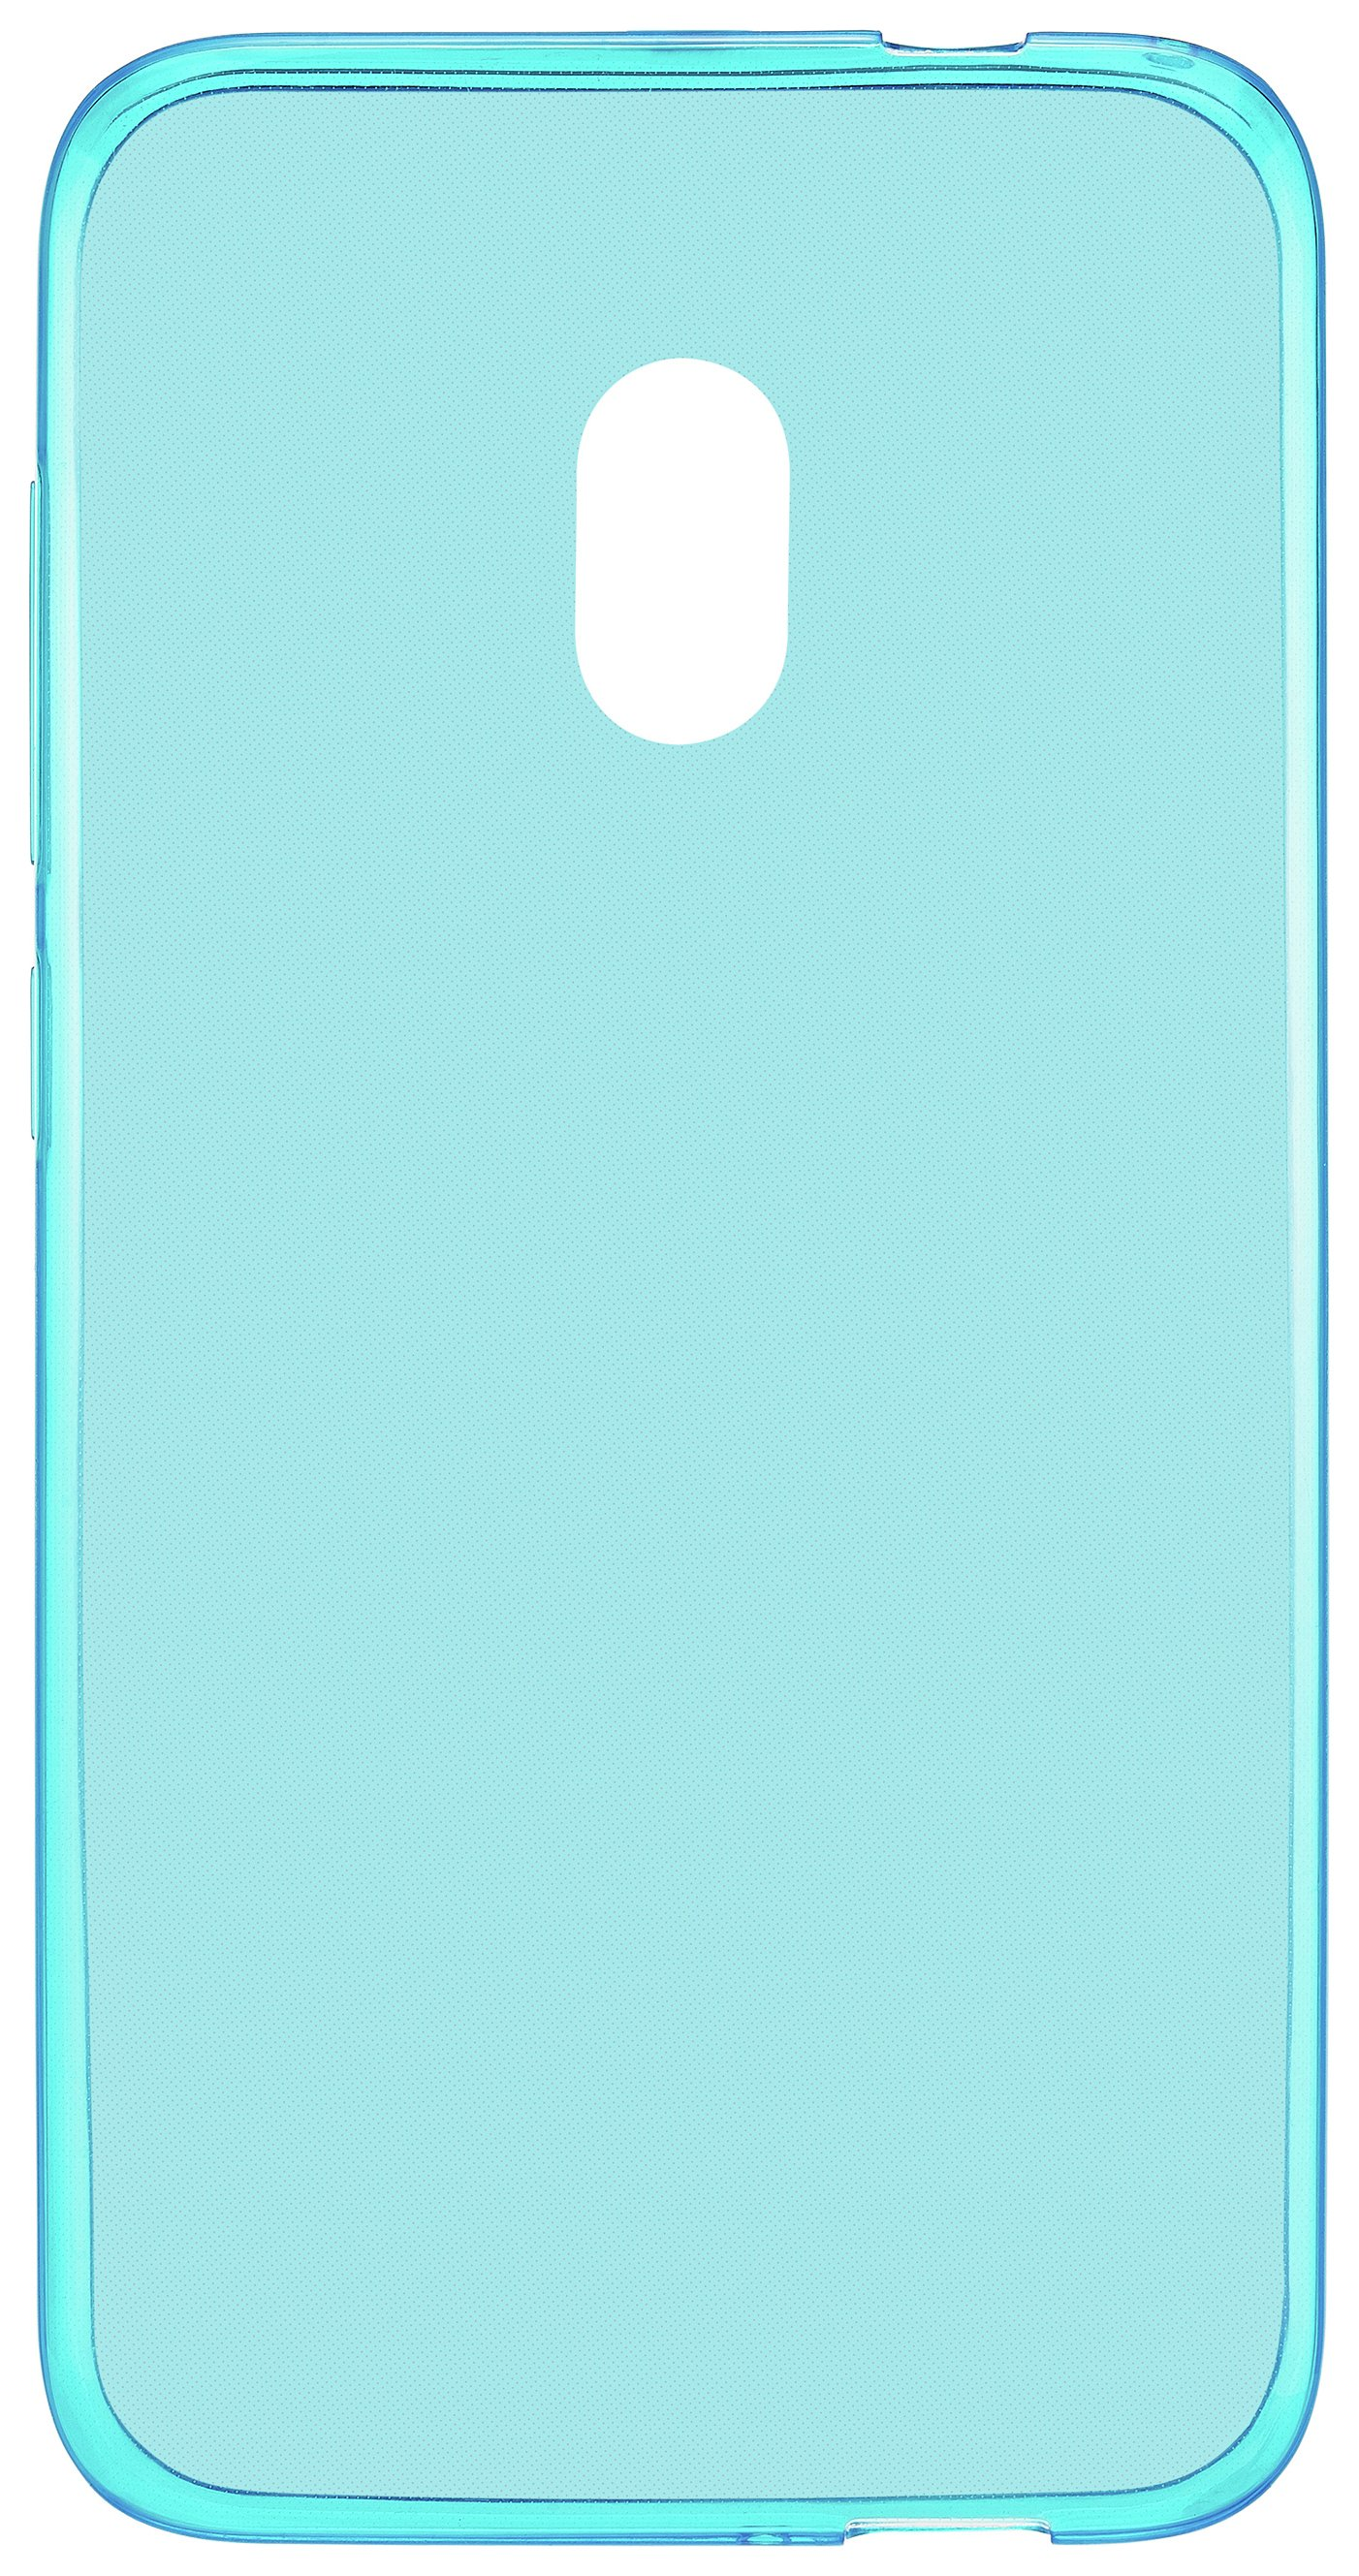 Image of Alcatel U5 4G Gel Mobile Phone Case - Blue.